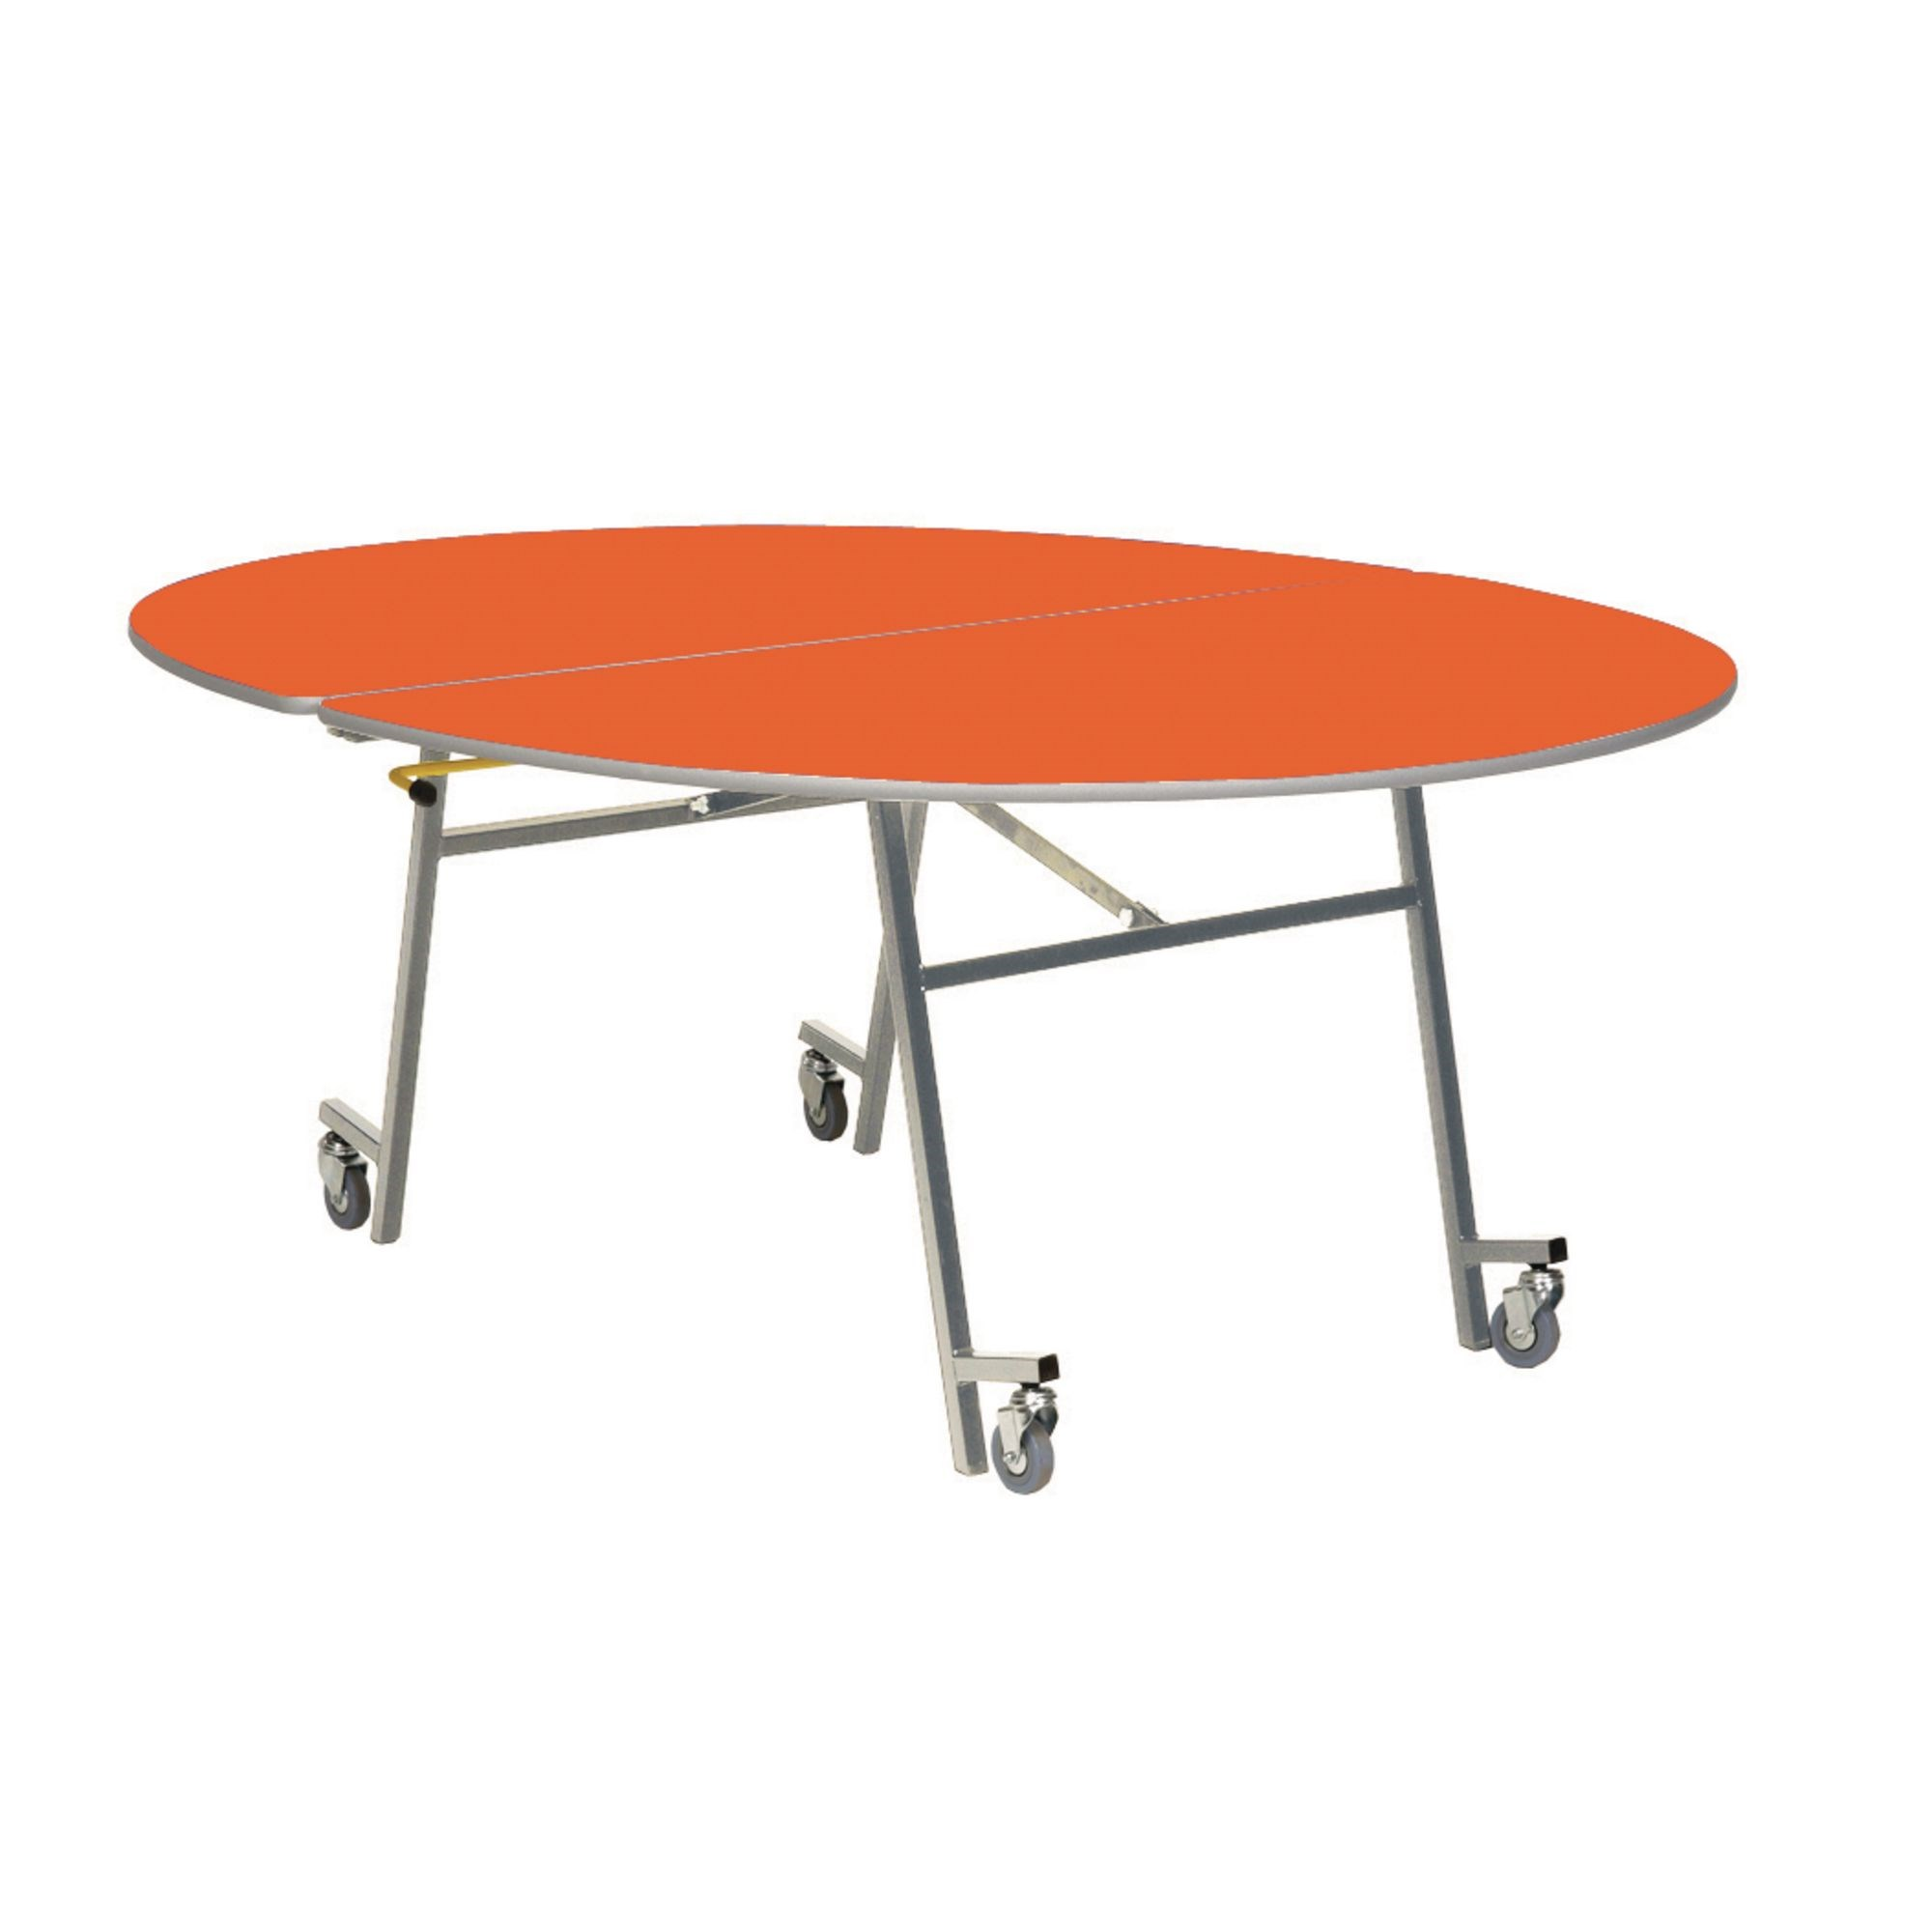 Pacer Table 1670 x 690mm Orange